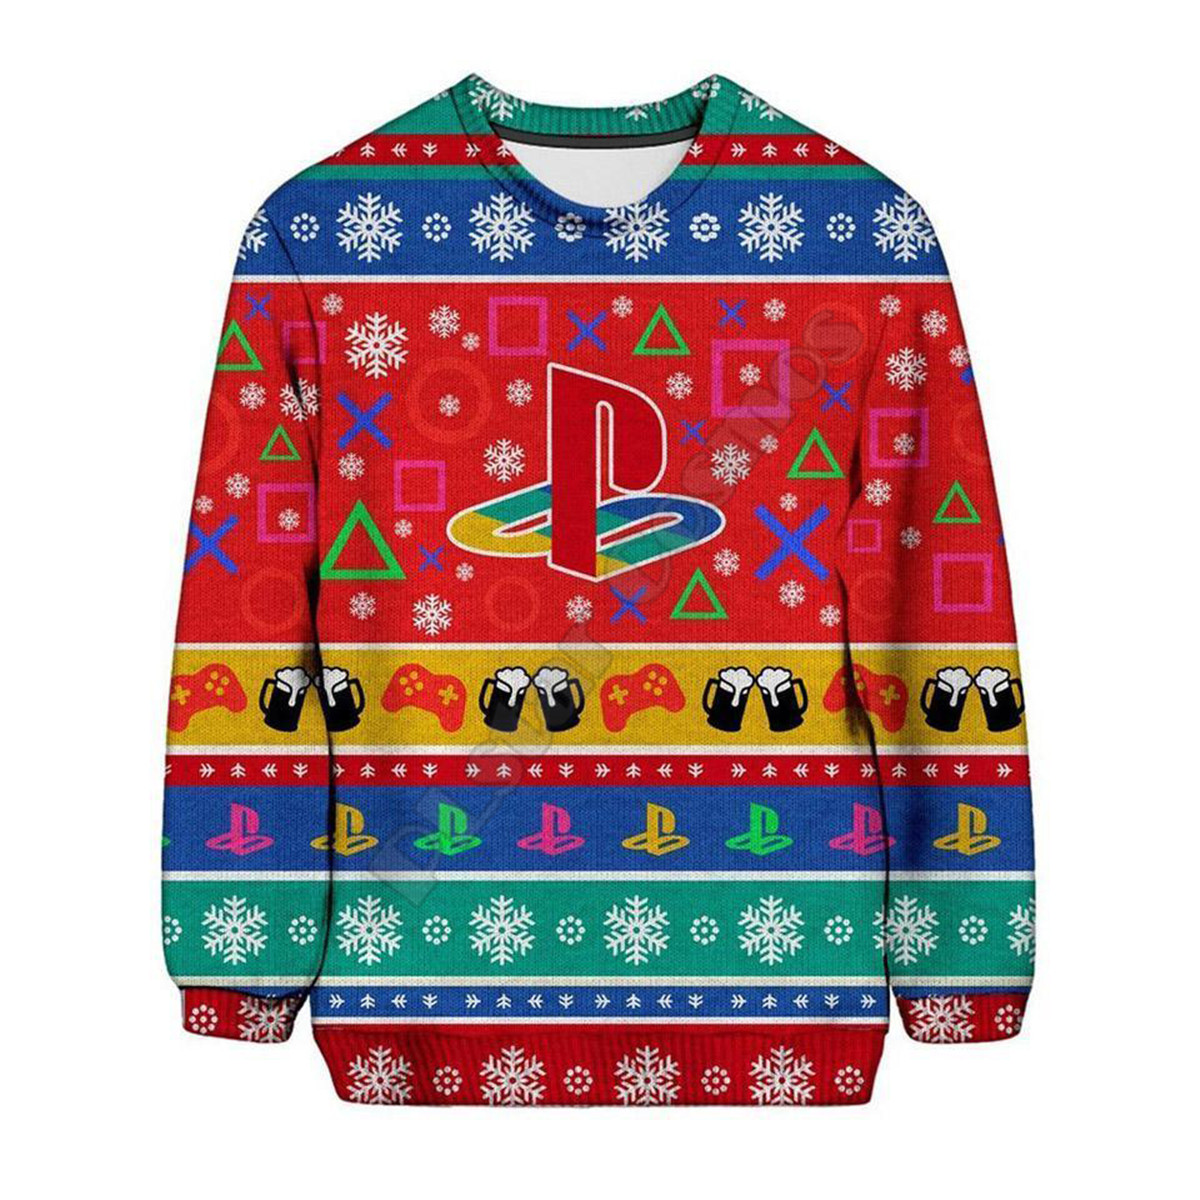 PLstar Cosmos Christmas Sweater Fashion Funny Hoodies Playstation 3D printed Sweatshirts Women For Men Pullover Cosplay Costumes